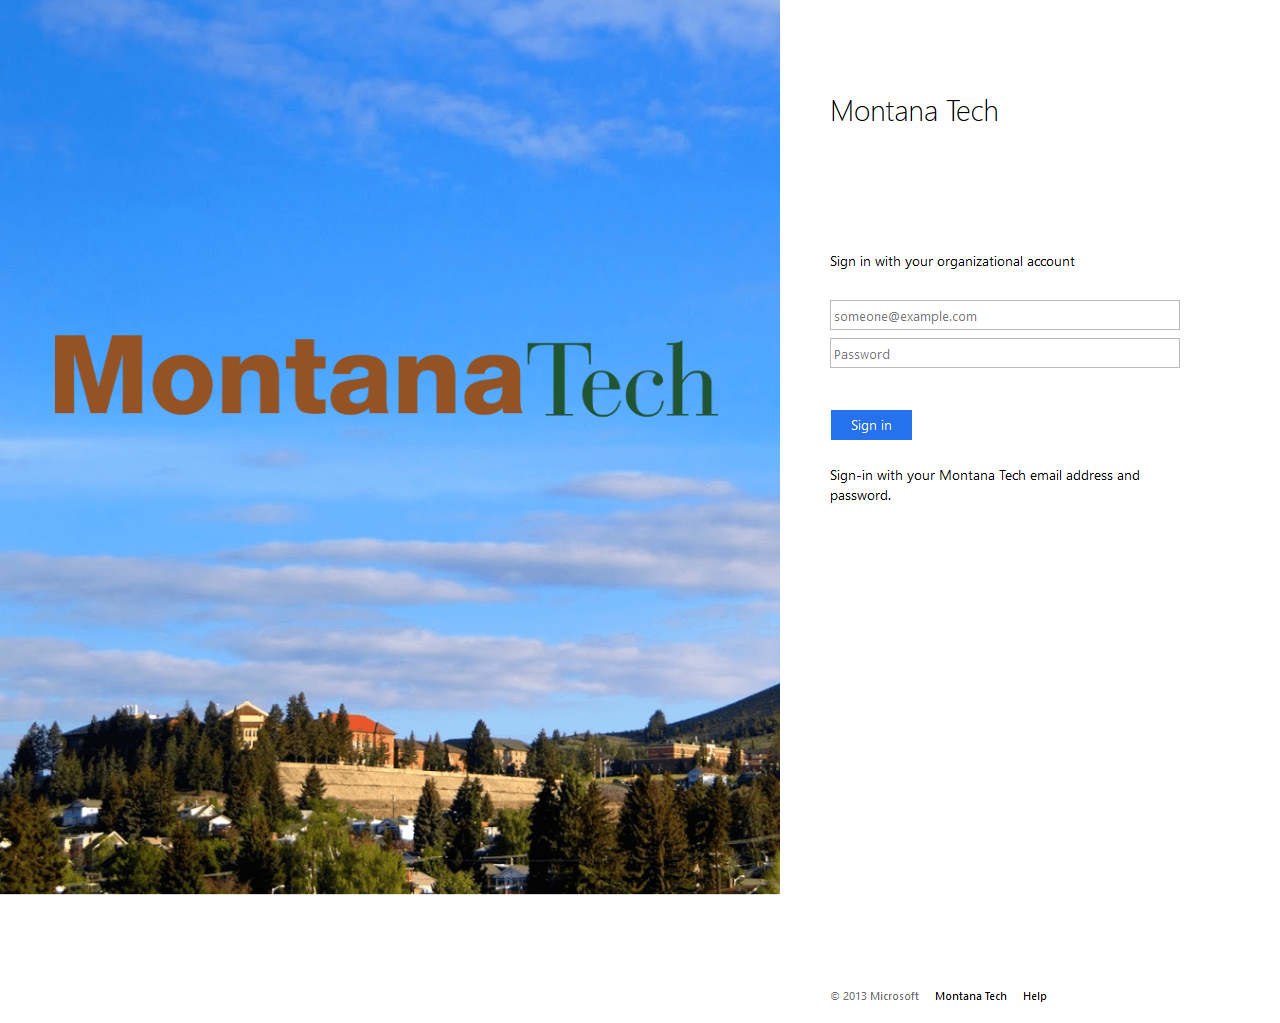 A Montana Tech Campus Picture on the left and the sign in boxes on the right.